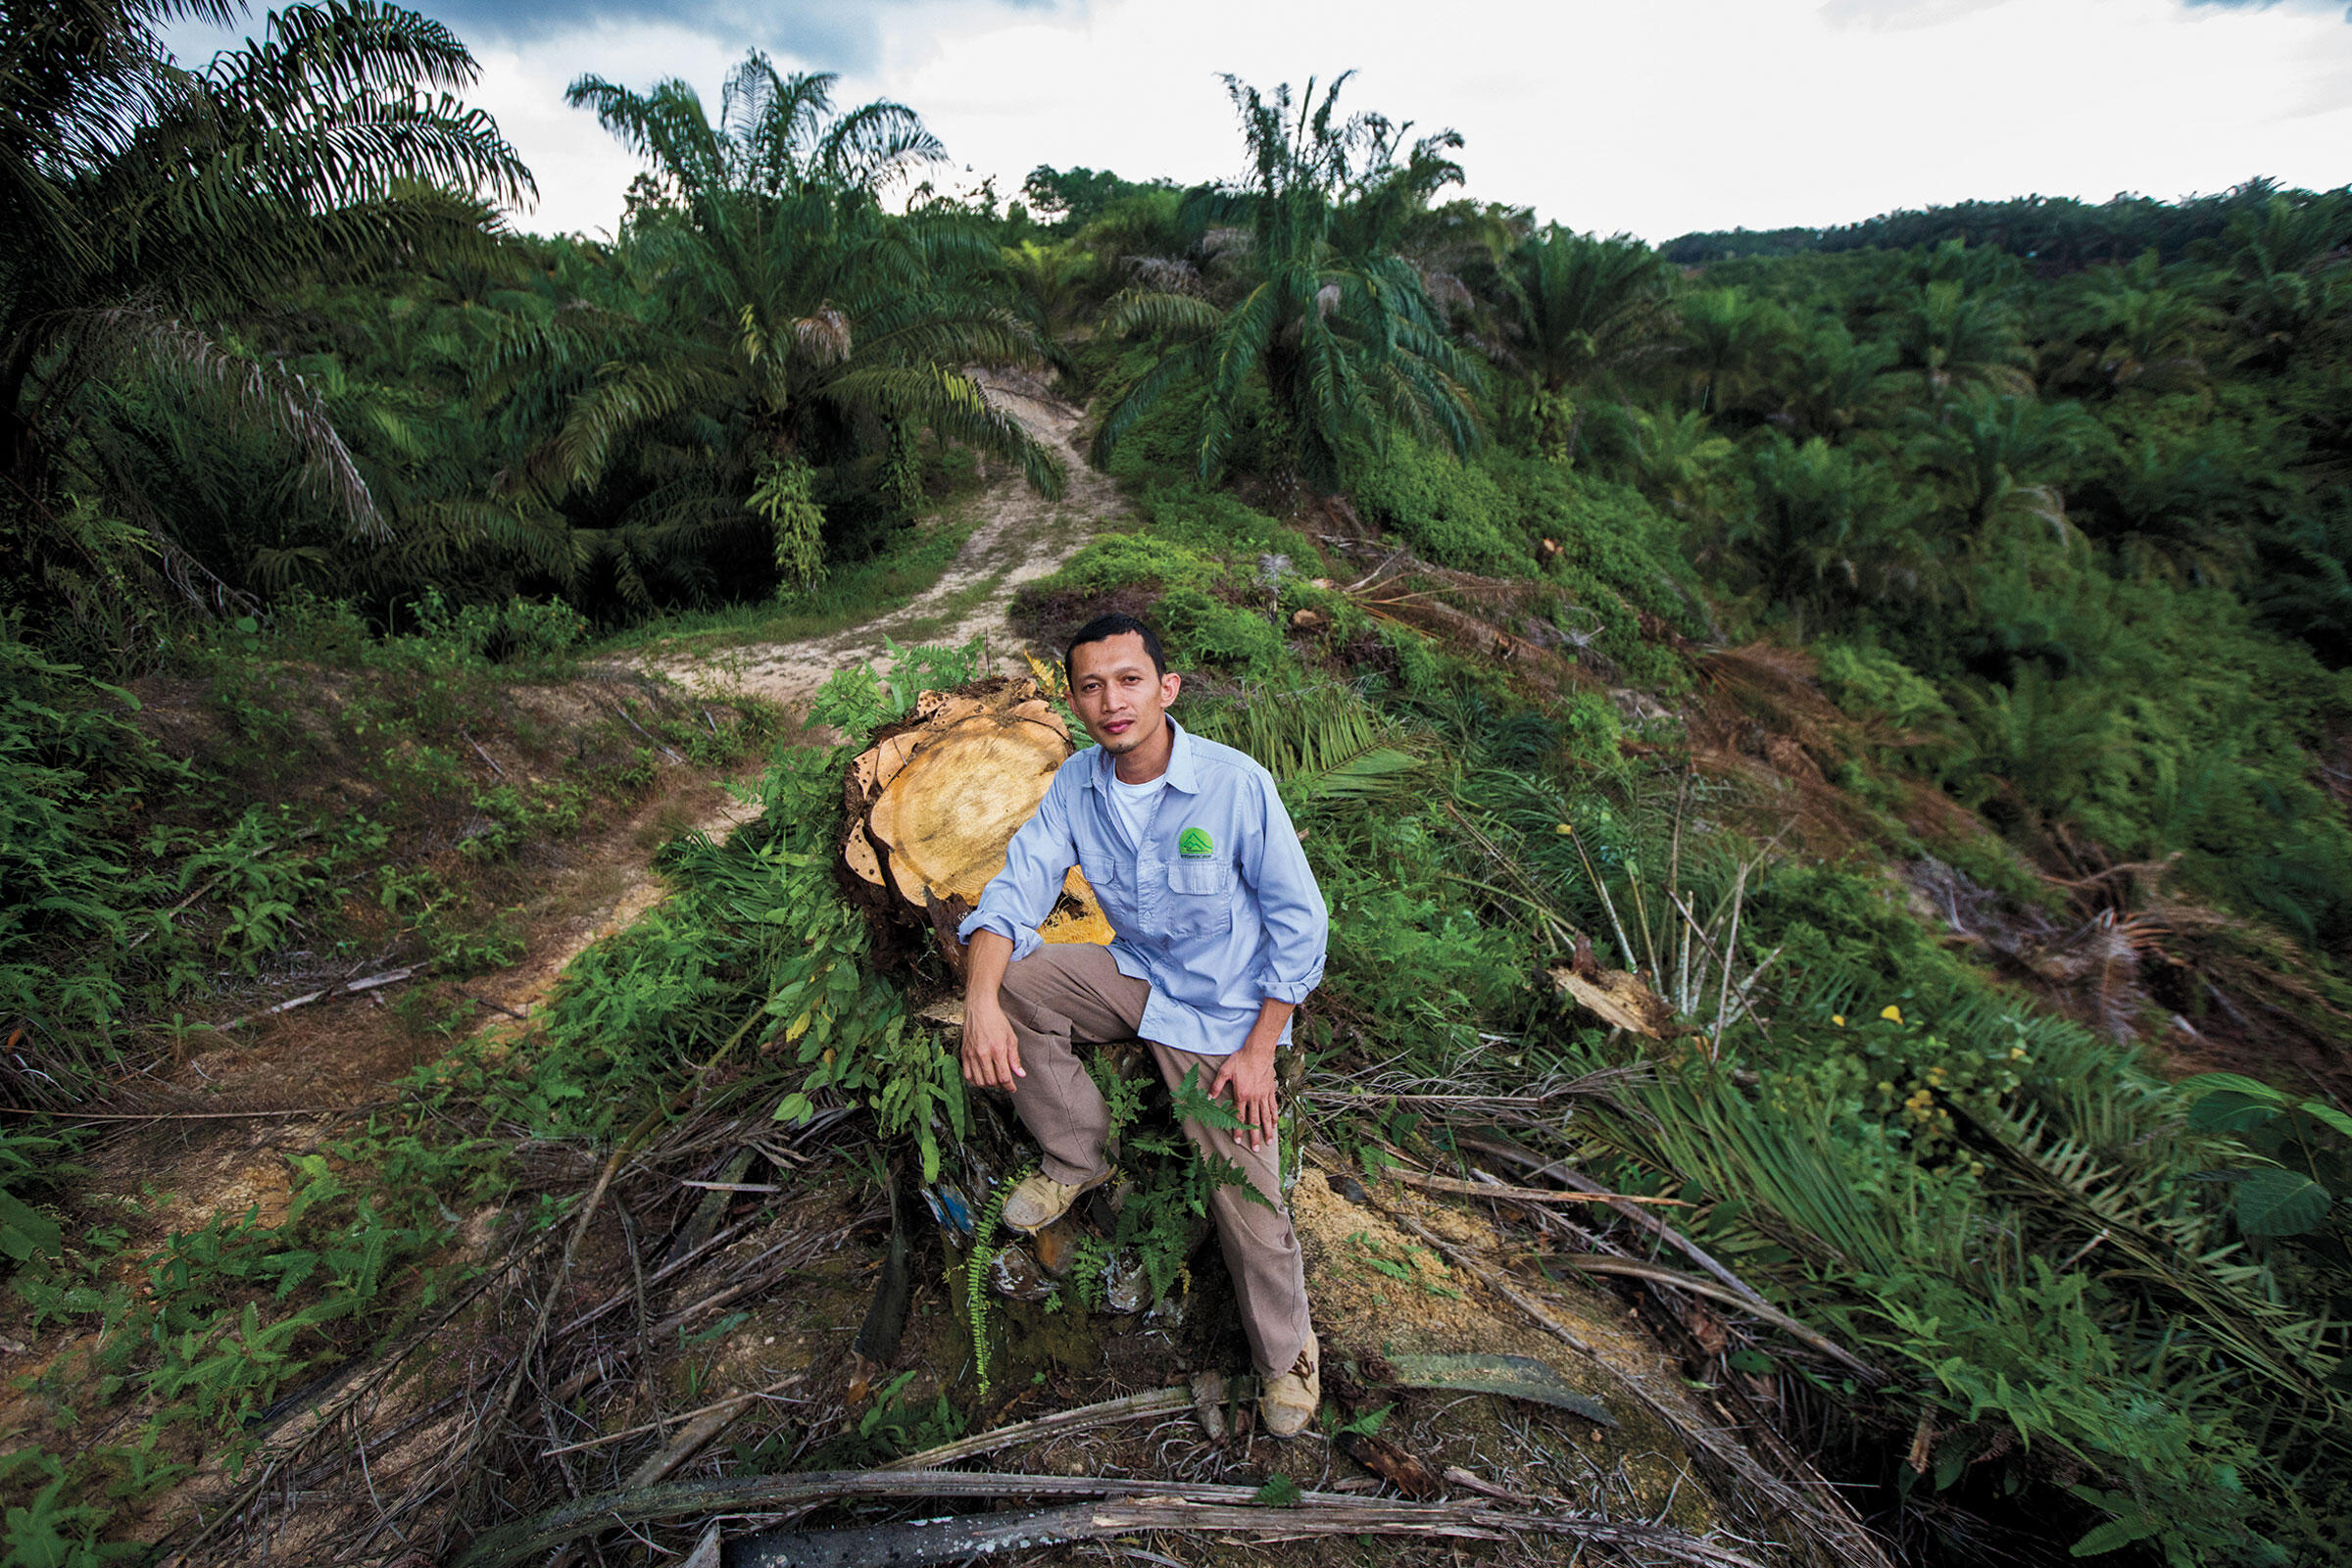 Rudi Putra, who accompanies his rangers on 15-day monthly patrols, has dismantled 26 illegal plantations—roughly 7,500 acres of oil palm. Paul Hilton